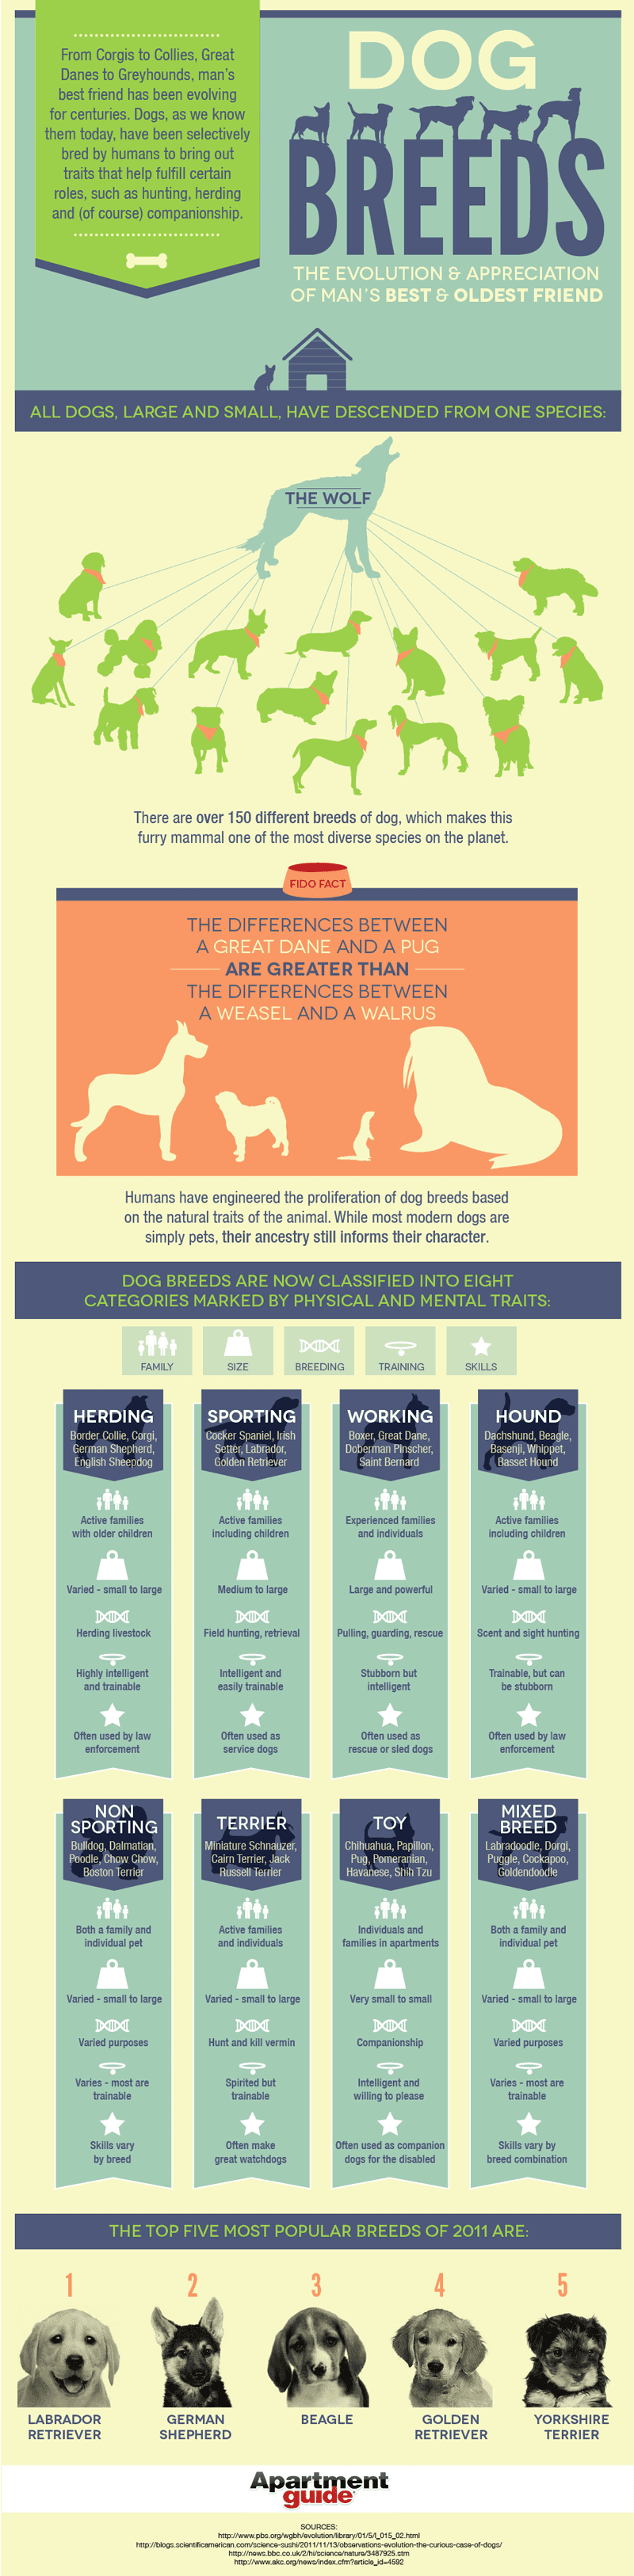 dog-breeds-infographic